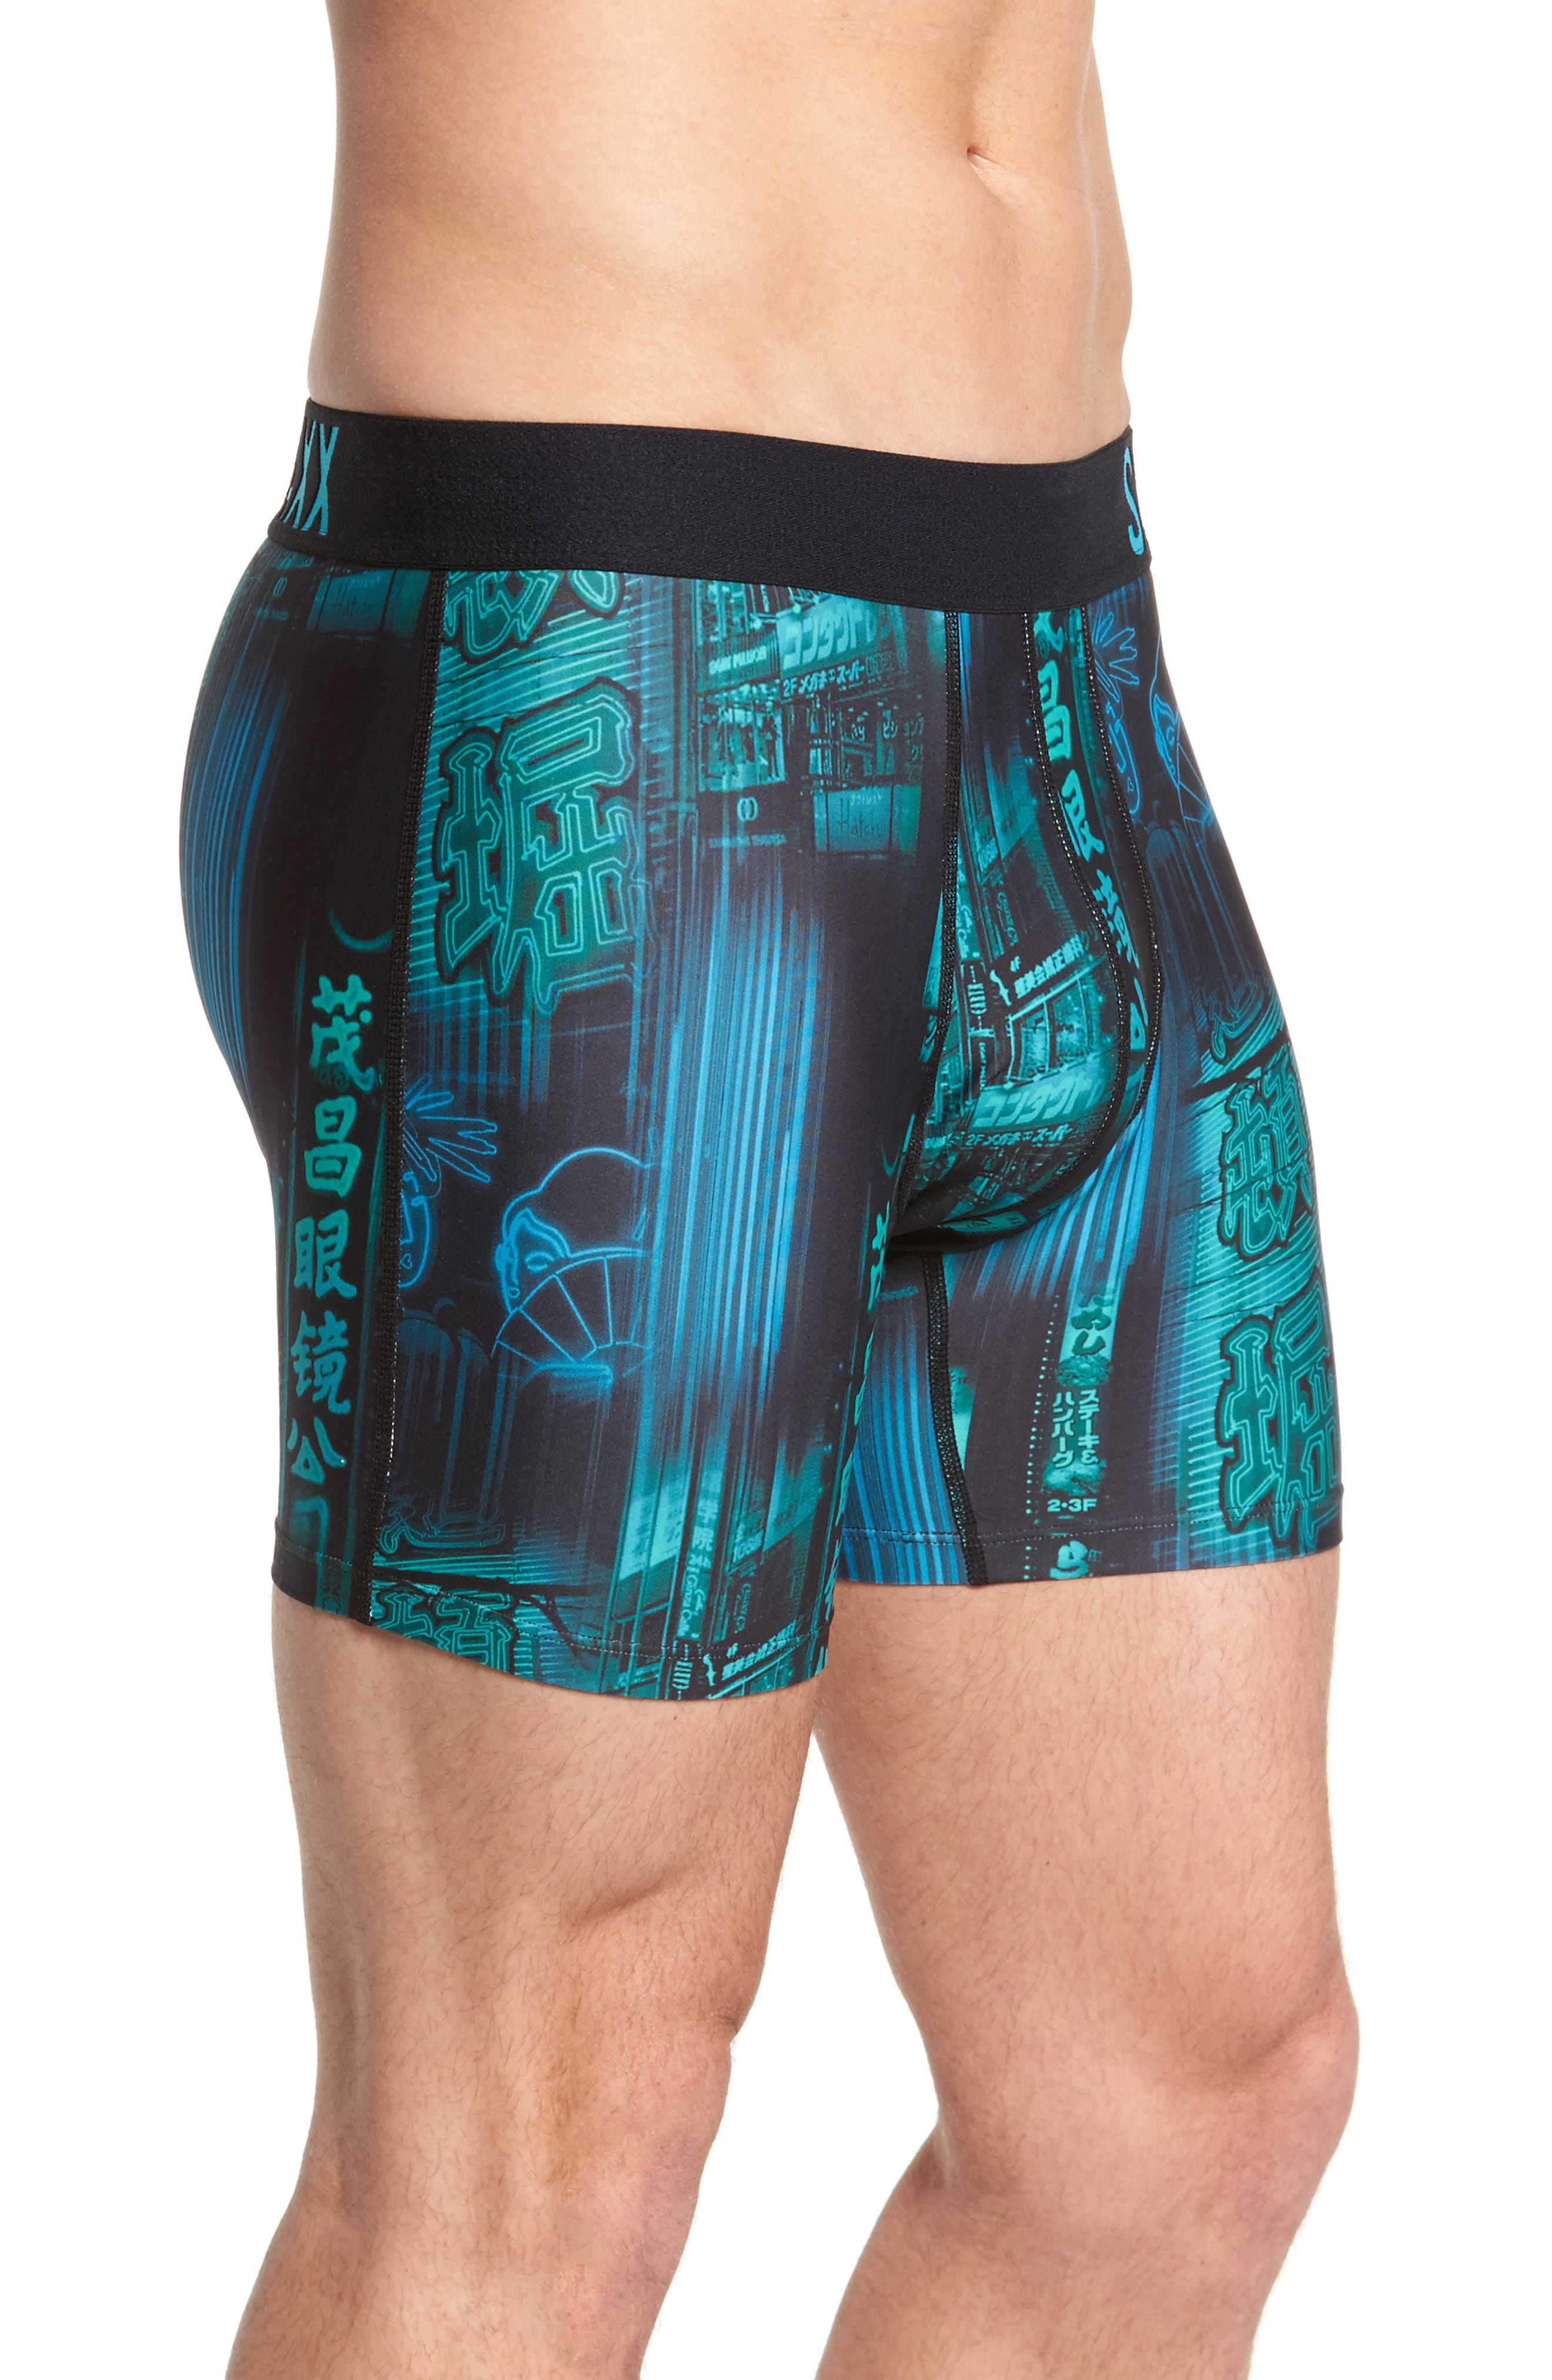 Fuse Neon Signs Boxer Briefs,                             Alternate thumbnail 3, color,                             Blade Runner